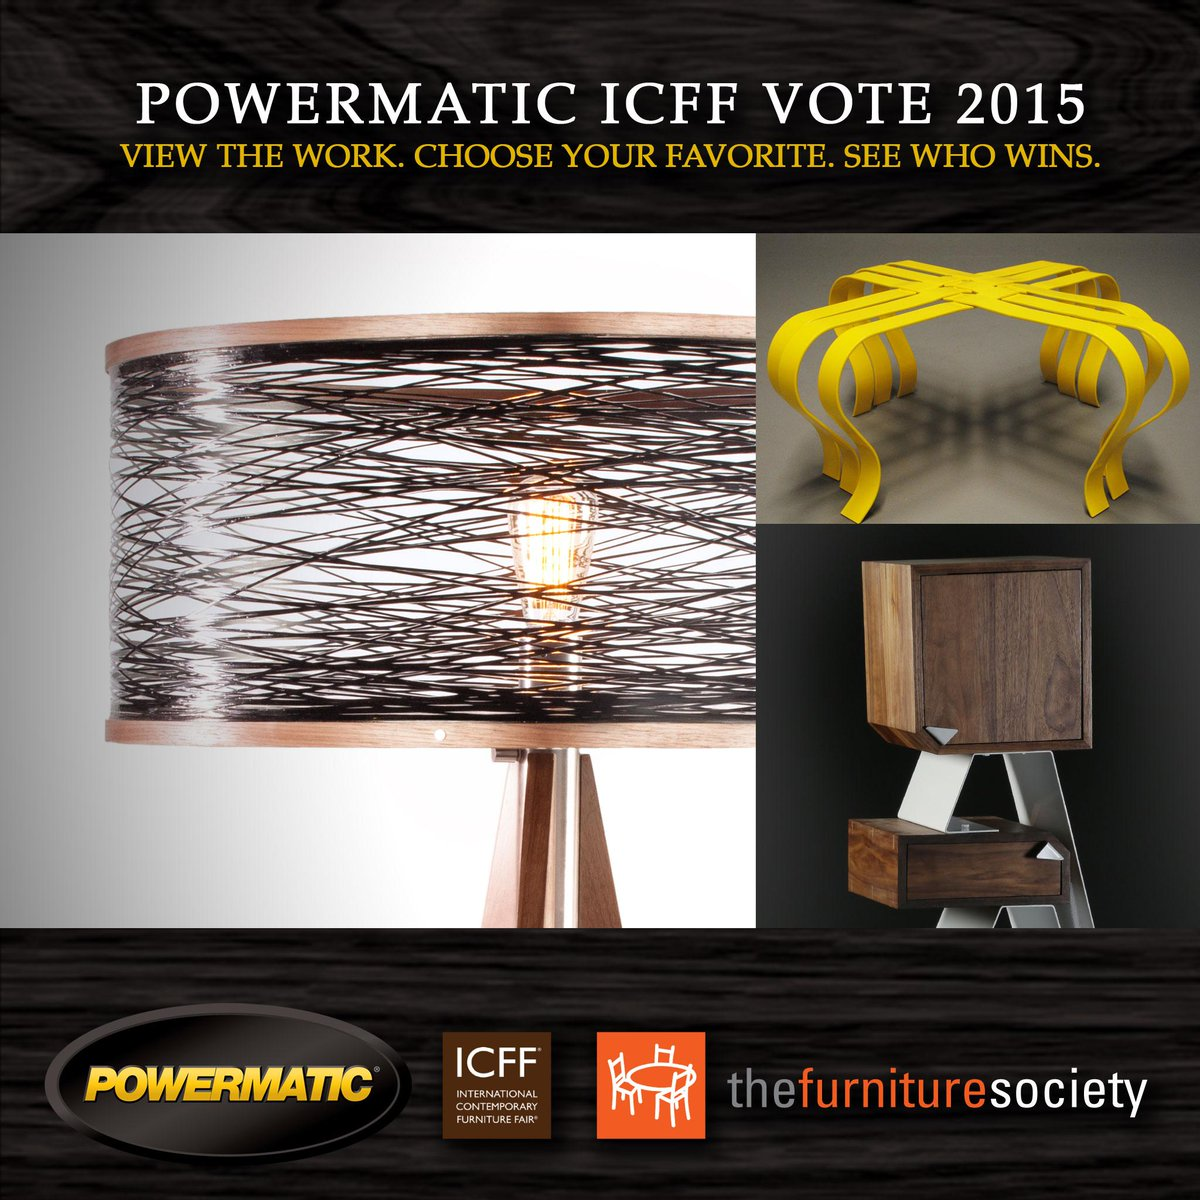 Vote for the #ICFF People's Choice Award now: http://t.co/TkXQOH9kGy We're giving the winner a new PM1500 bandsaw. http://t.co/AcQbUcYzUC